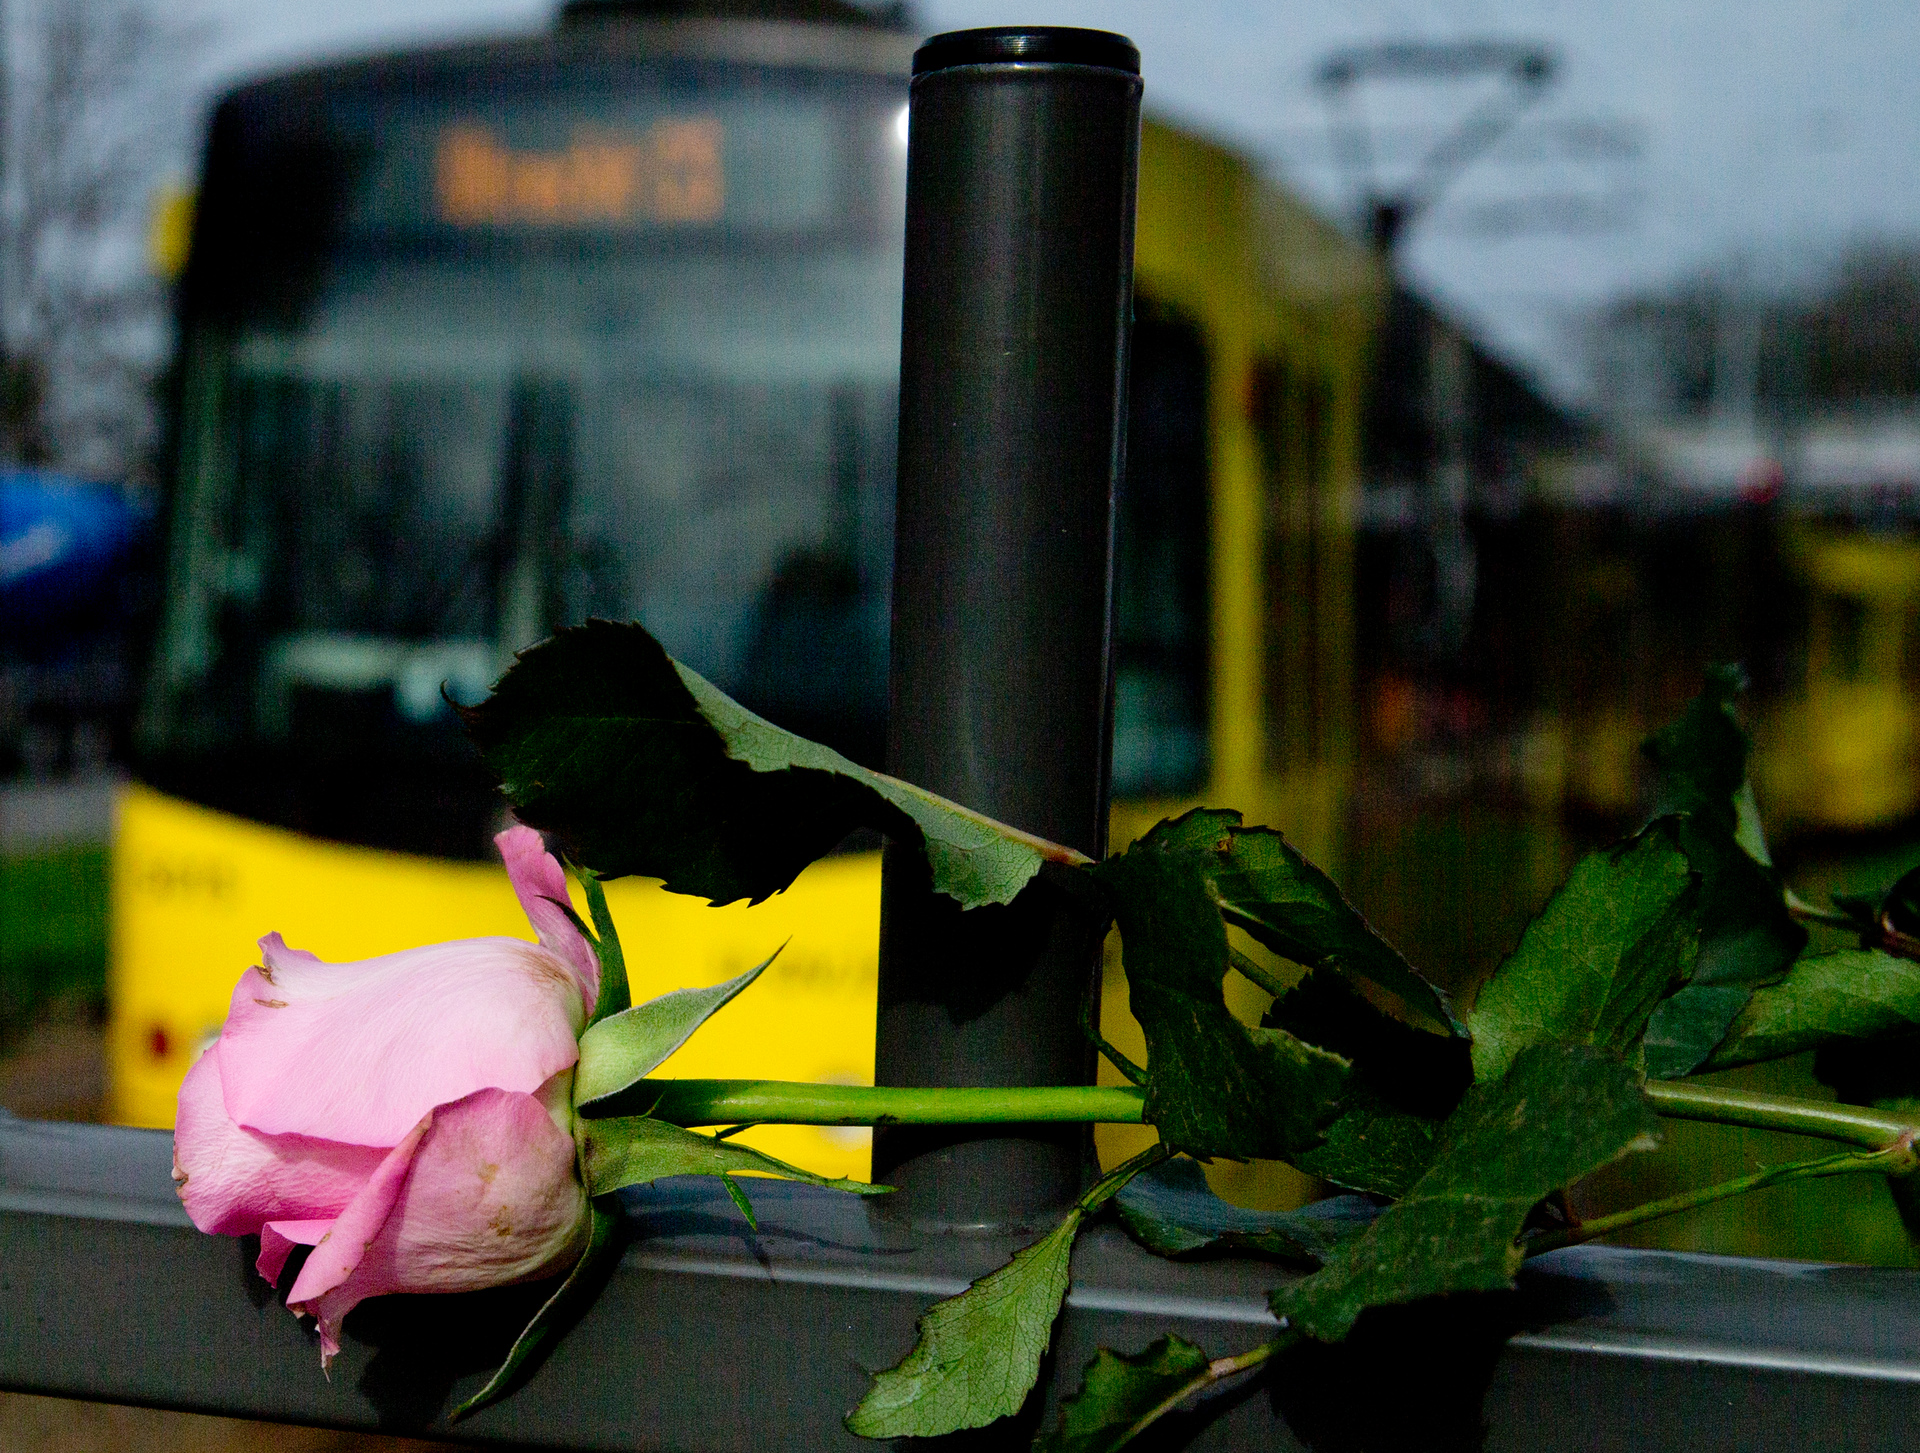 Dutch tram shooting suspect confesses to attack that killed three people